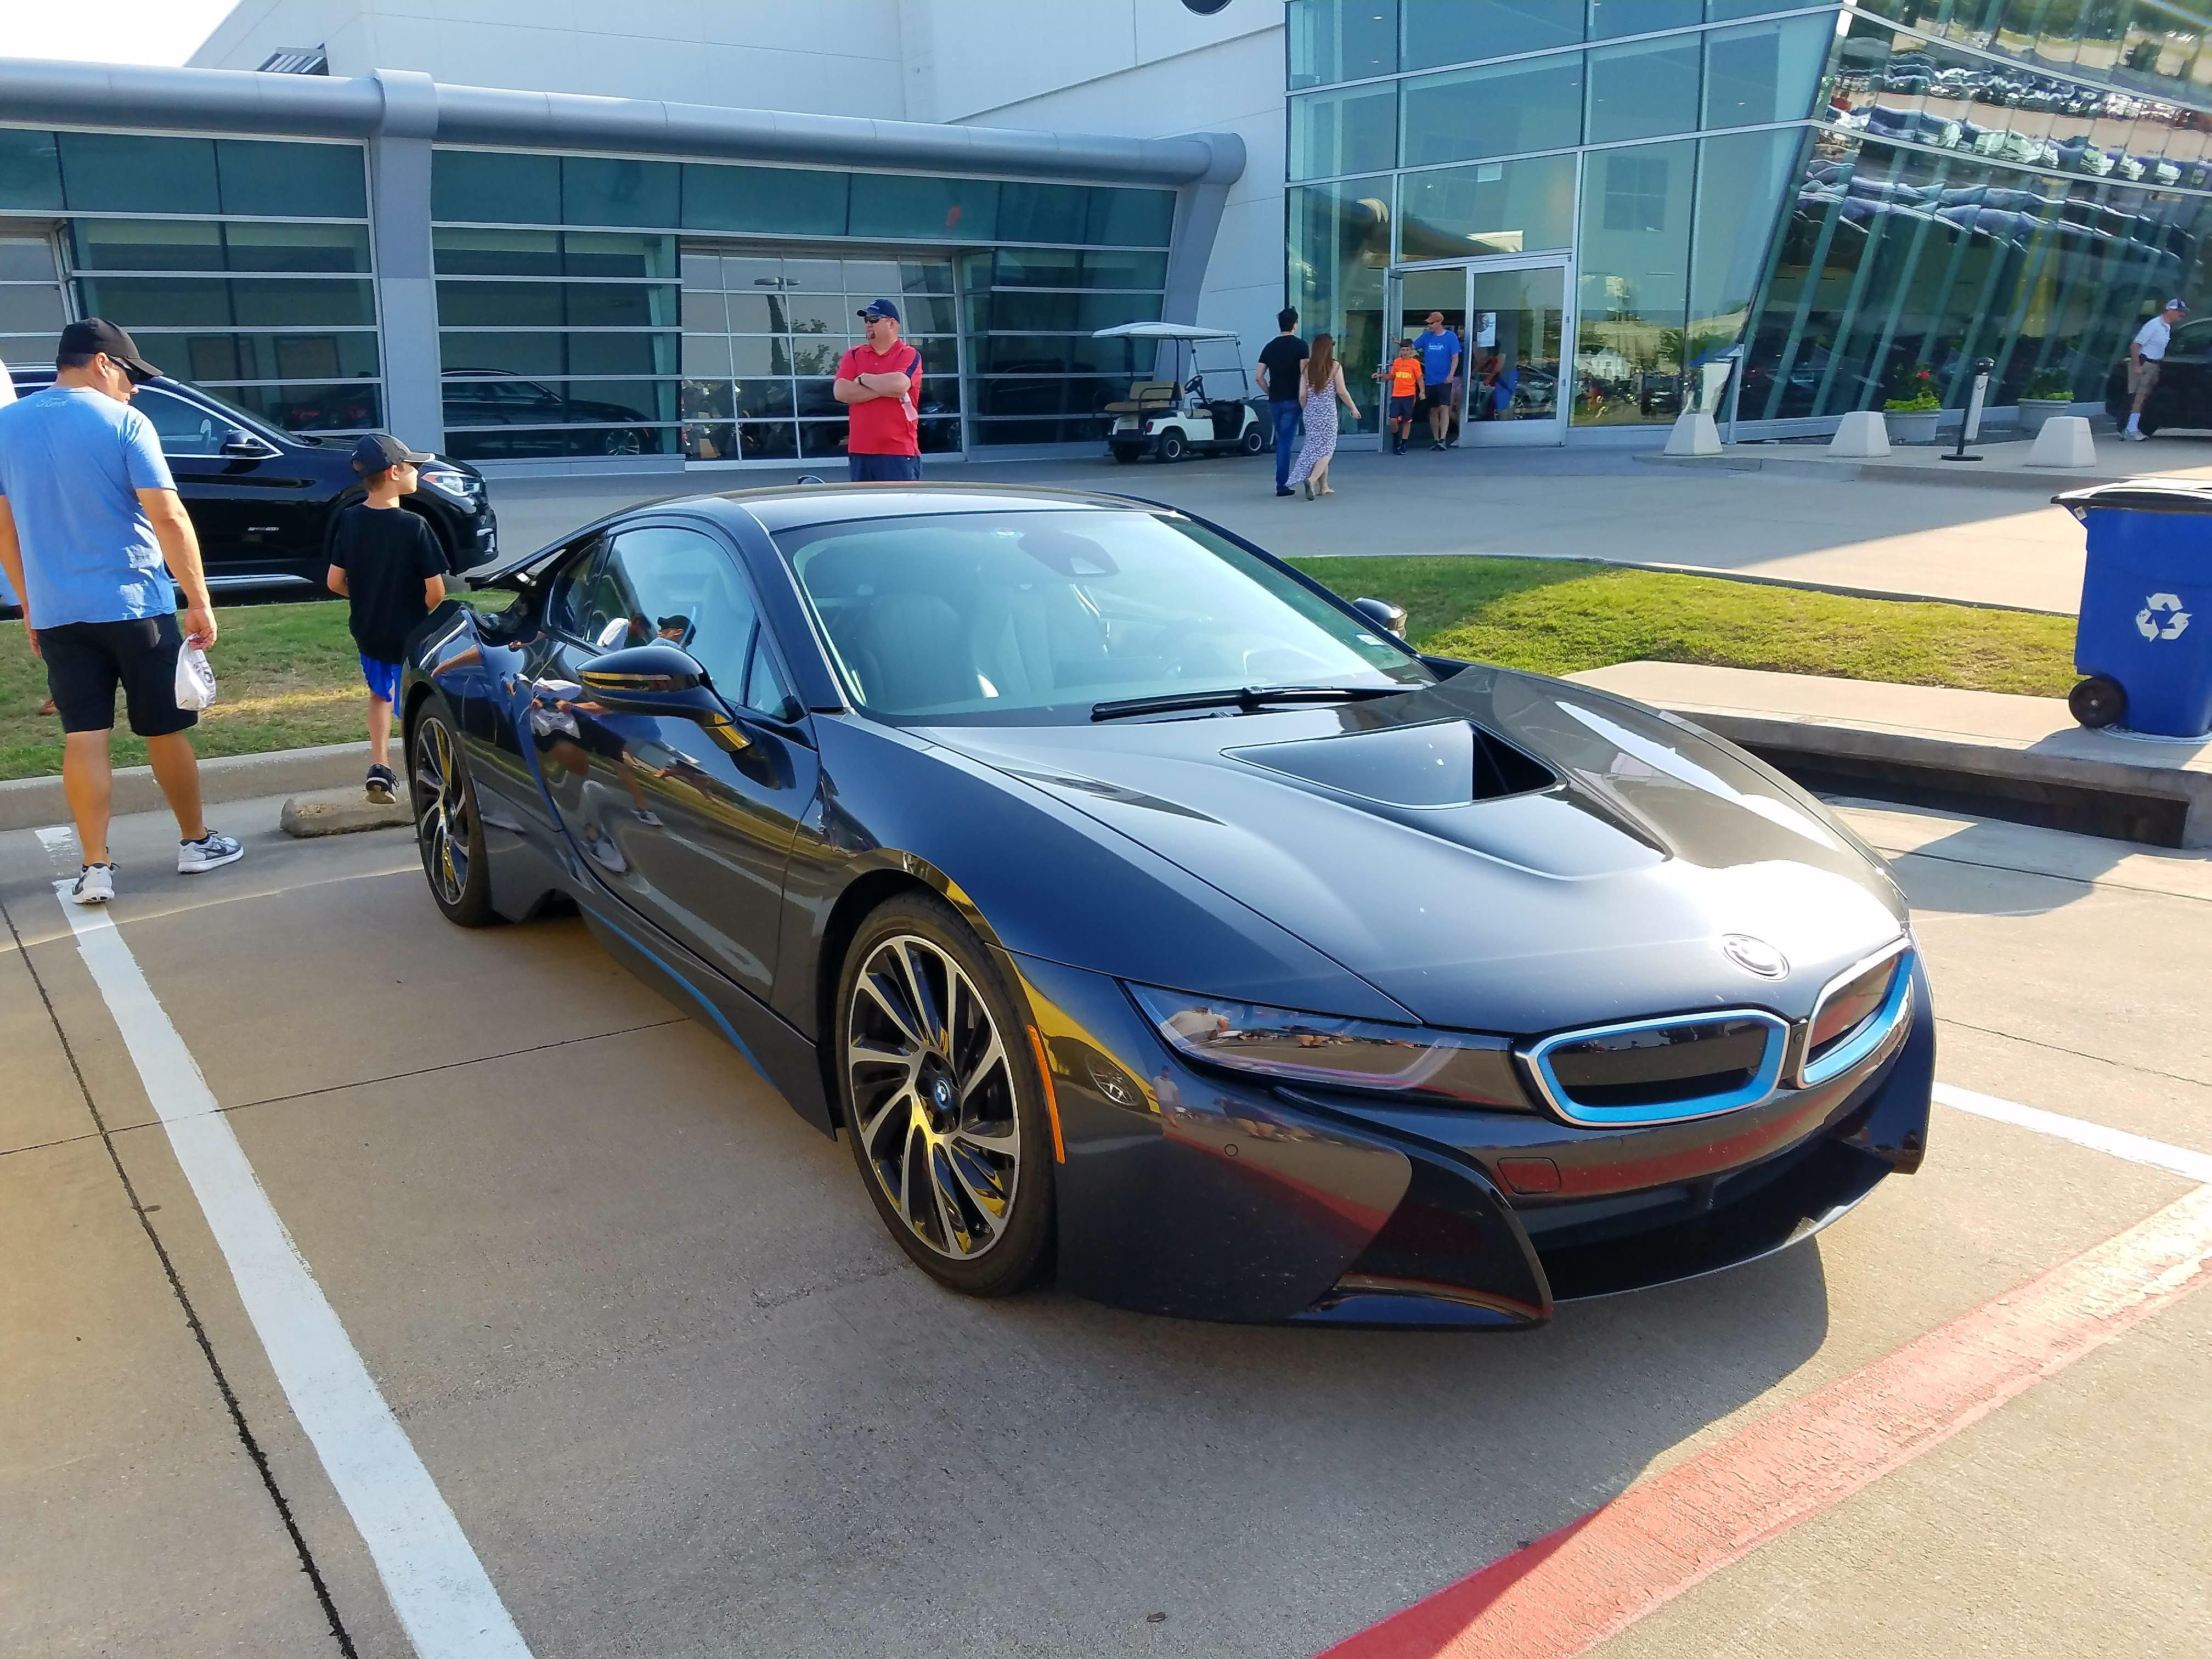 BMW I8 at C&C Dallas Perfection rides Pinterest